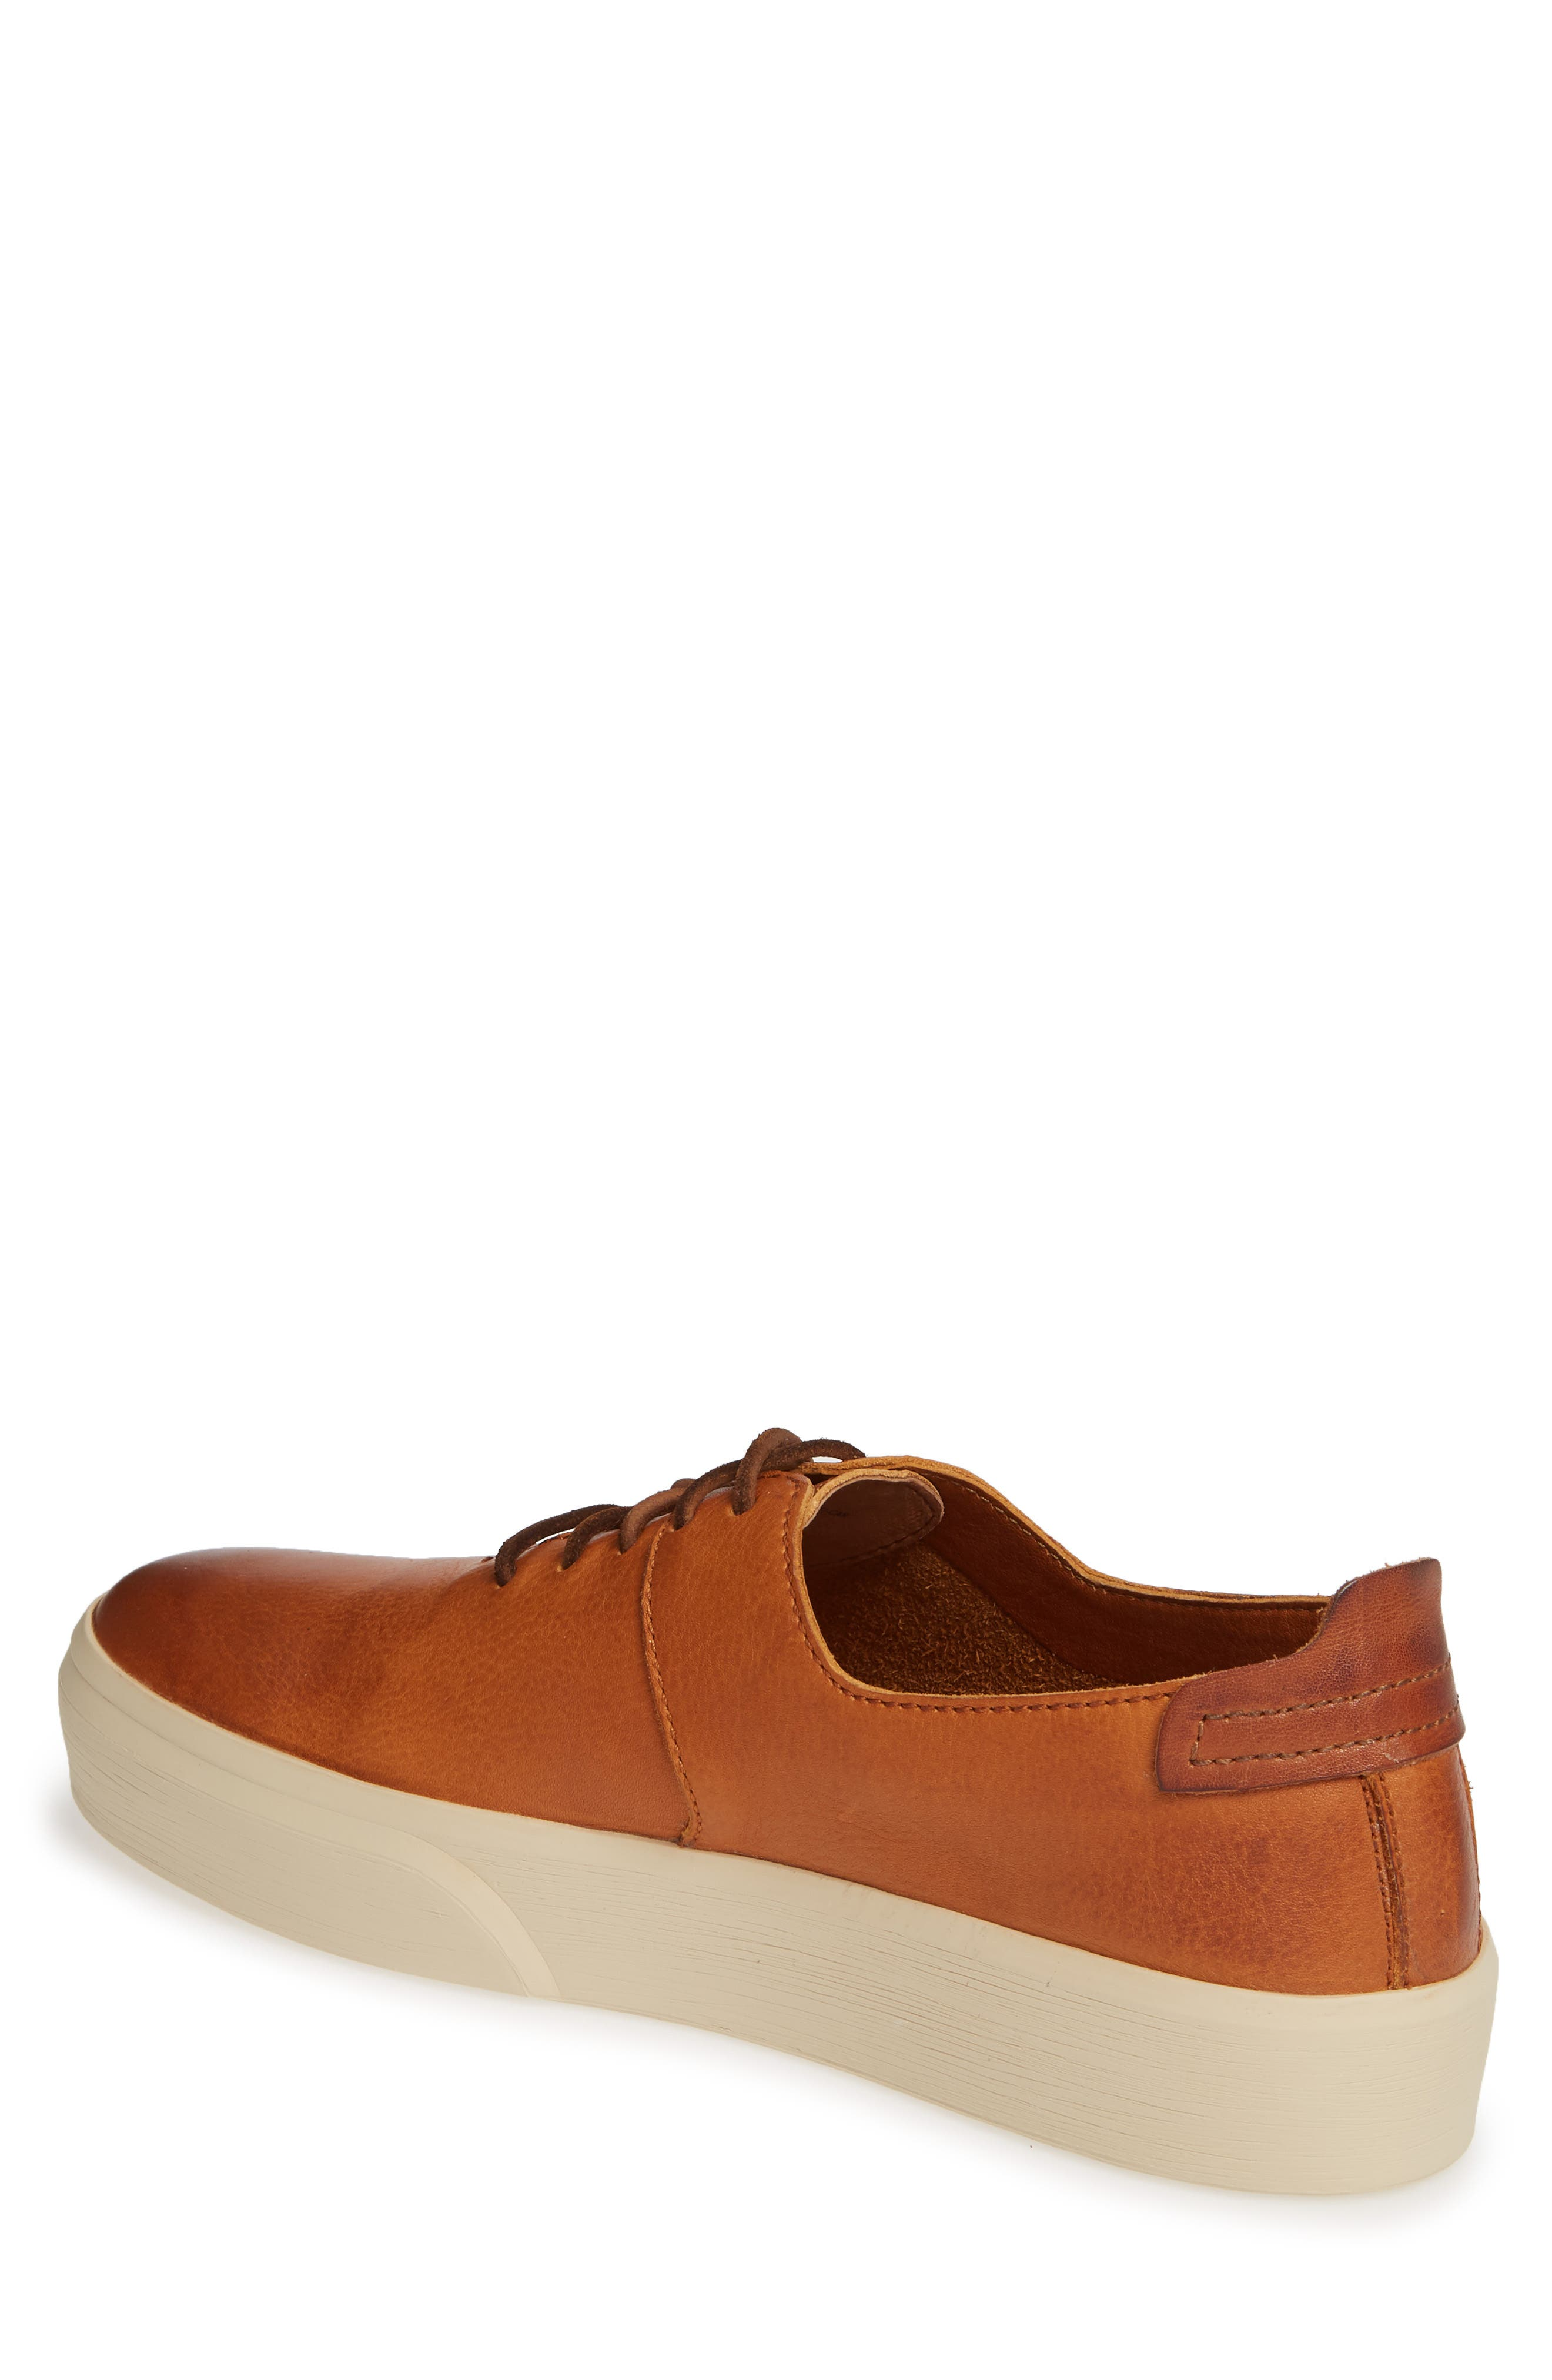 FRYE,                             Beacon Sneaker,                             Alternate thumbnail 2, color,                             CARAMEL LEATHER